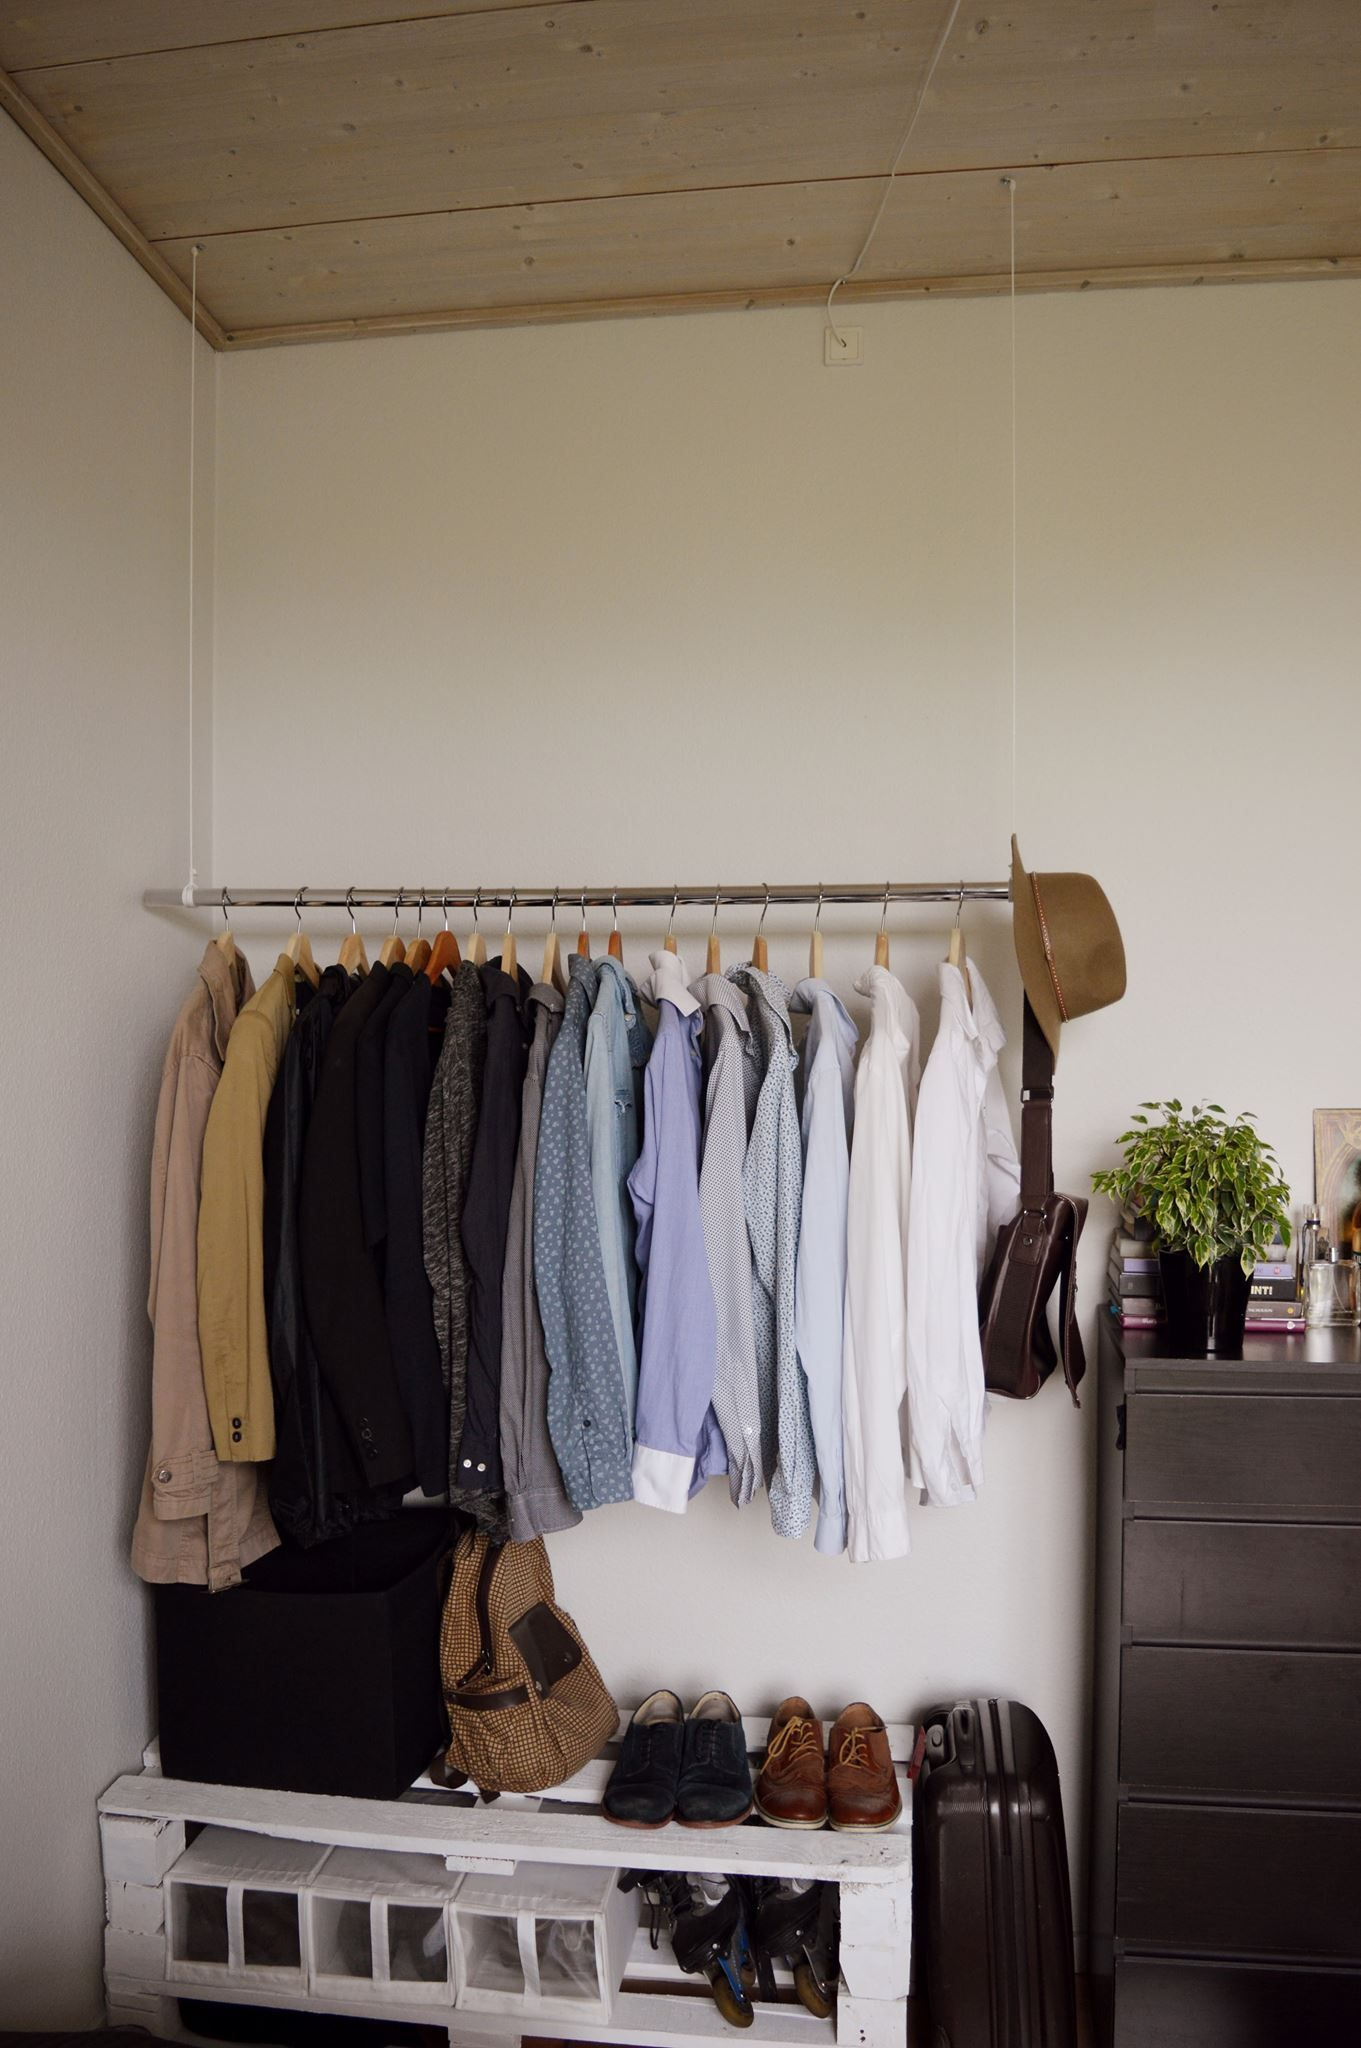 Men Clothes Hanger From Ceiling, Shelve From Pallets Handcraft Room